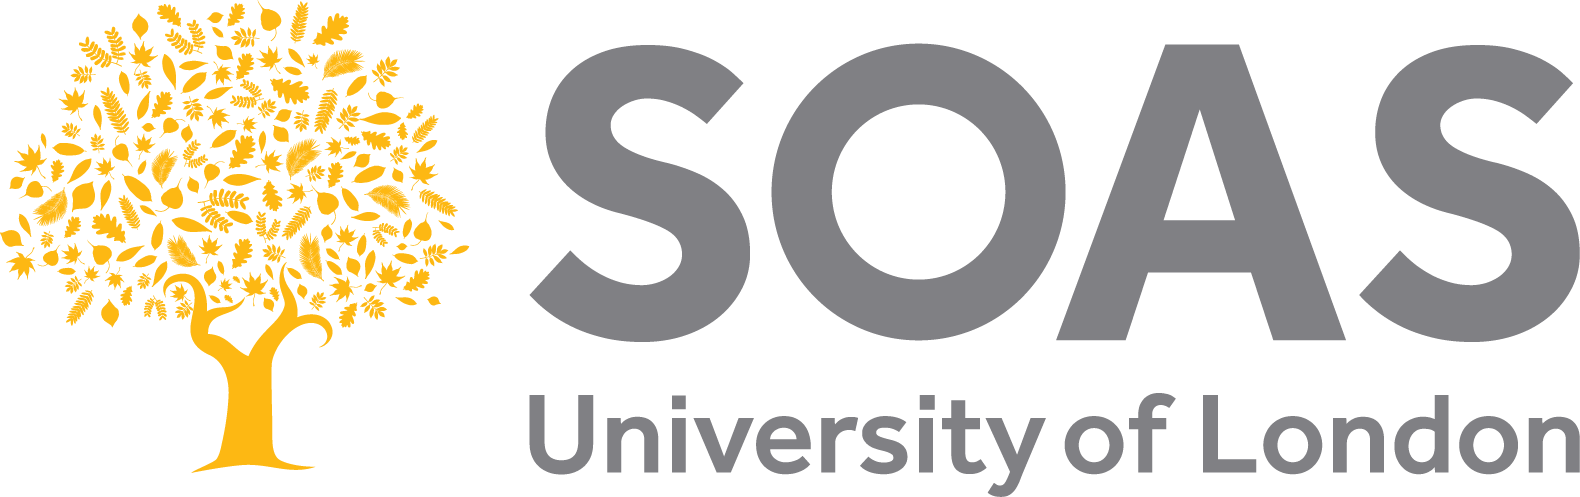 SOAS, University of London - England